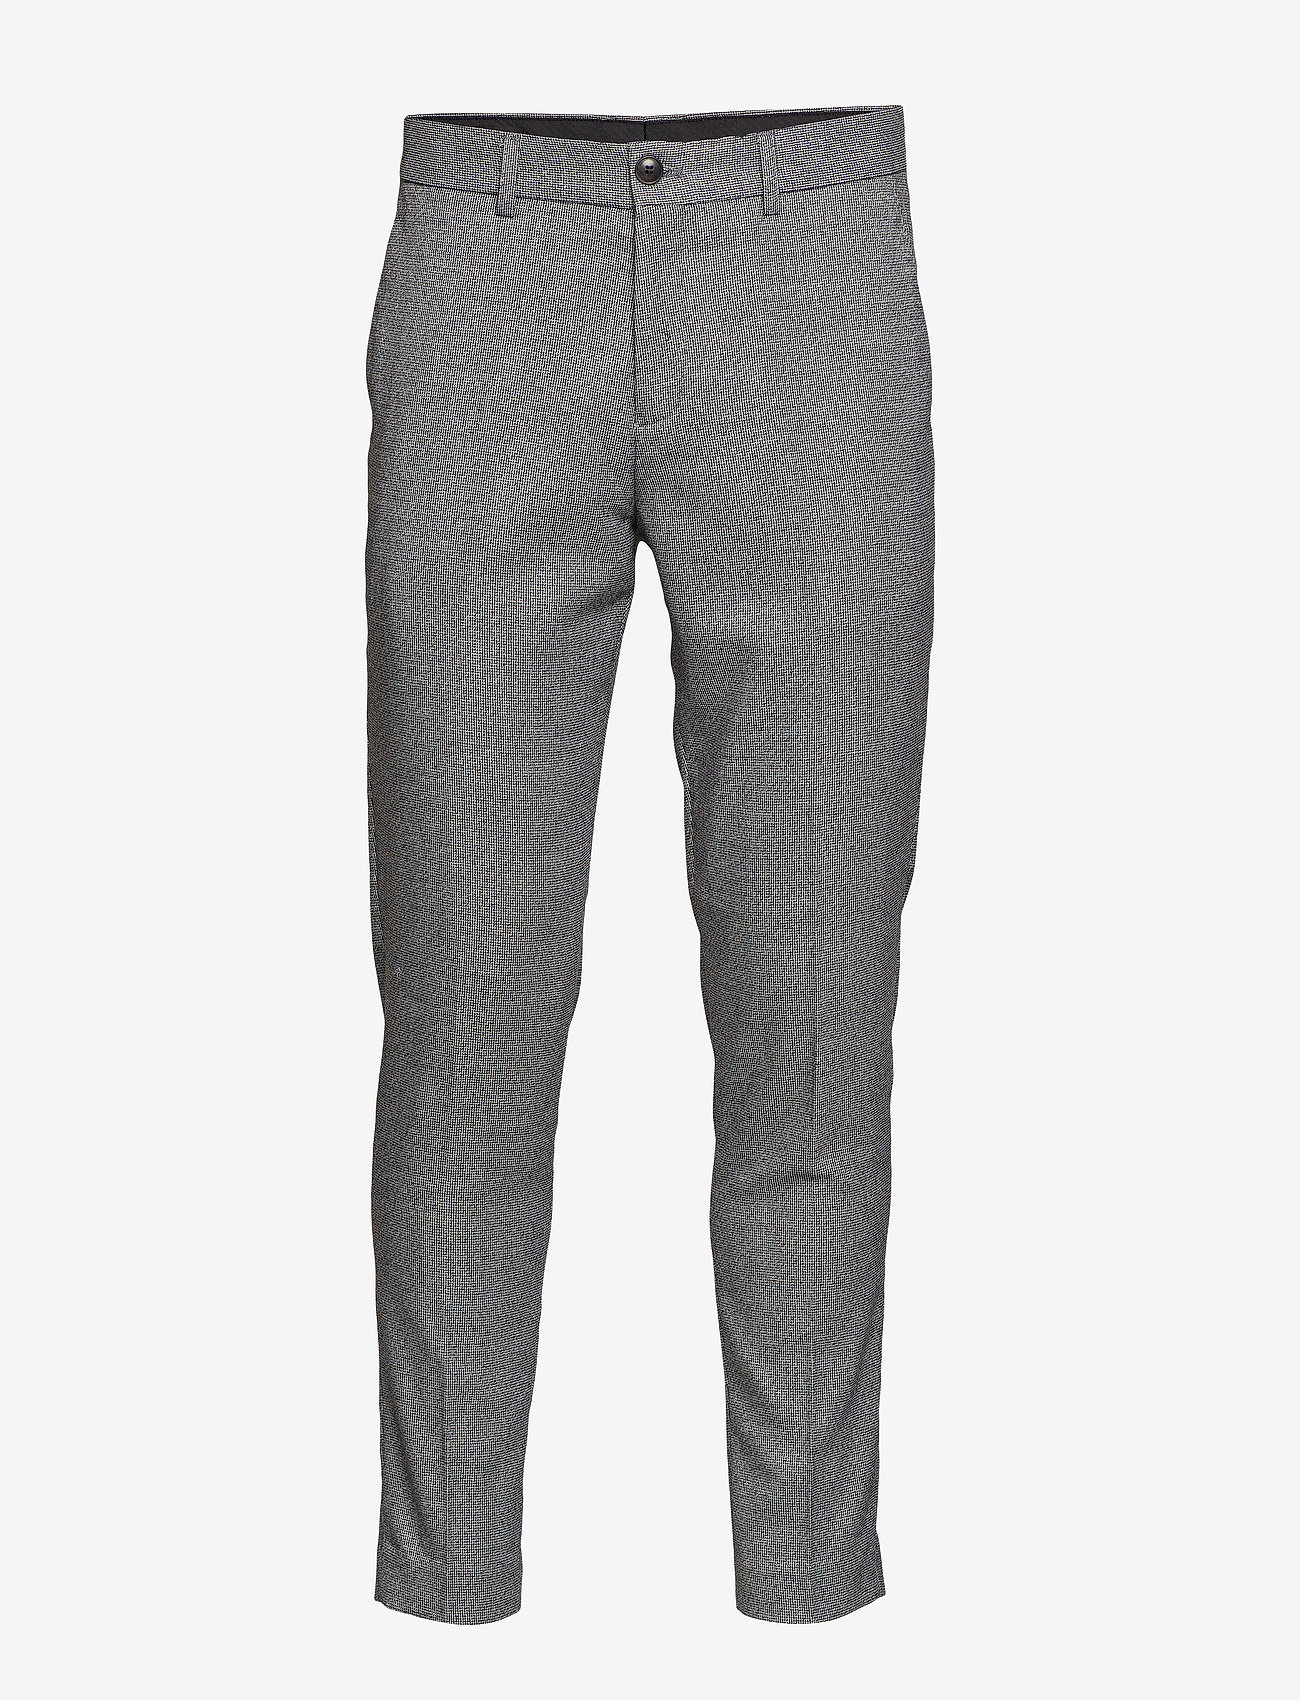 Junk De Luxe Puppytooth Club Pants - Byxor Grey Mix